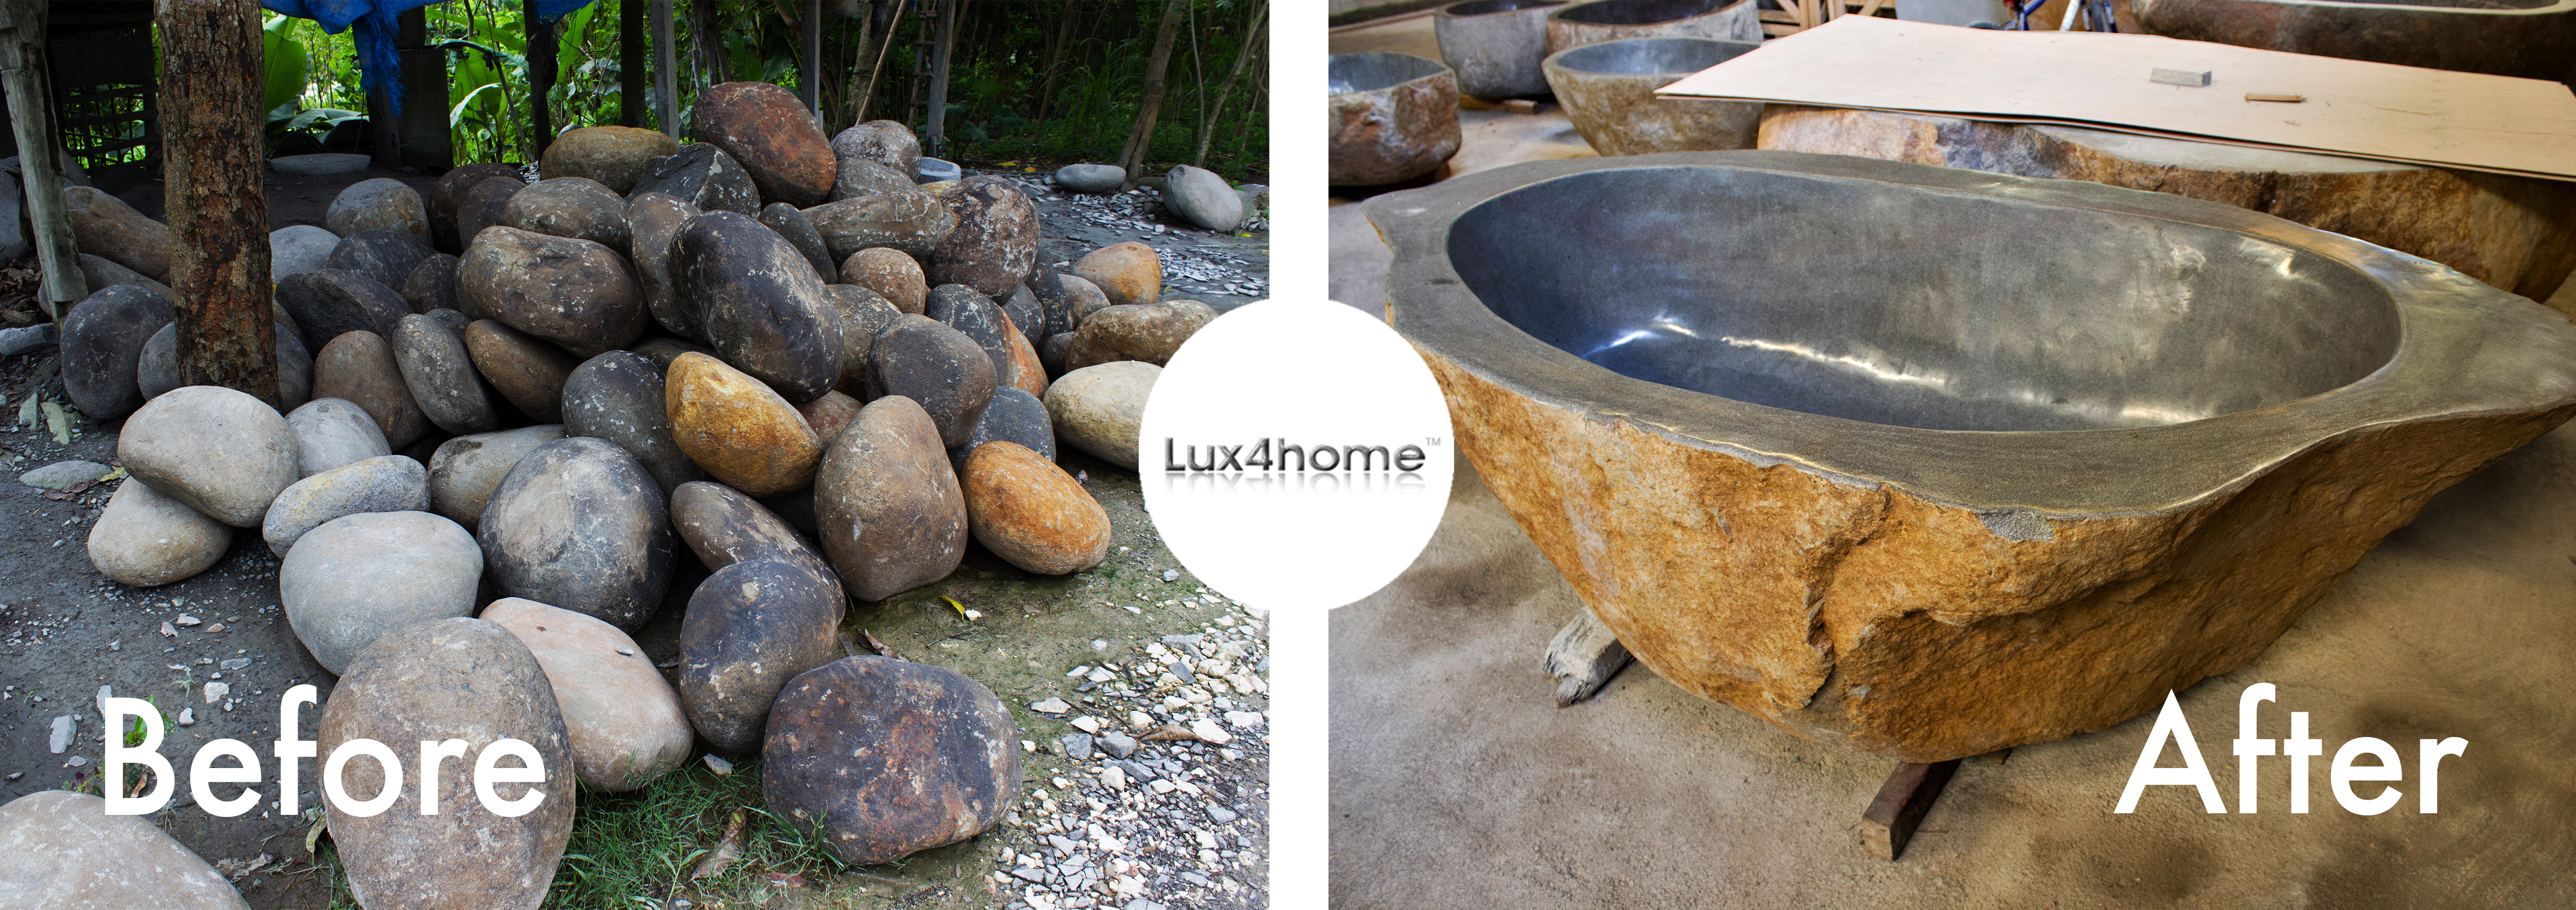 River Stone Sinks and Bathtubs Producer (3)